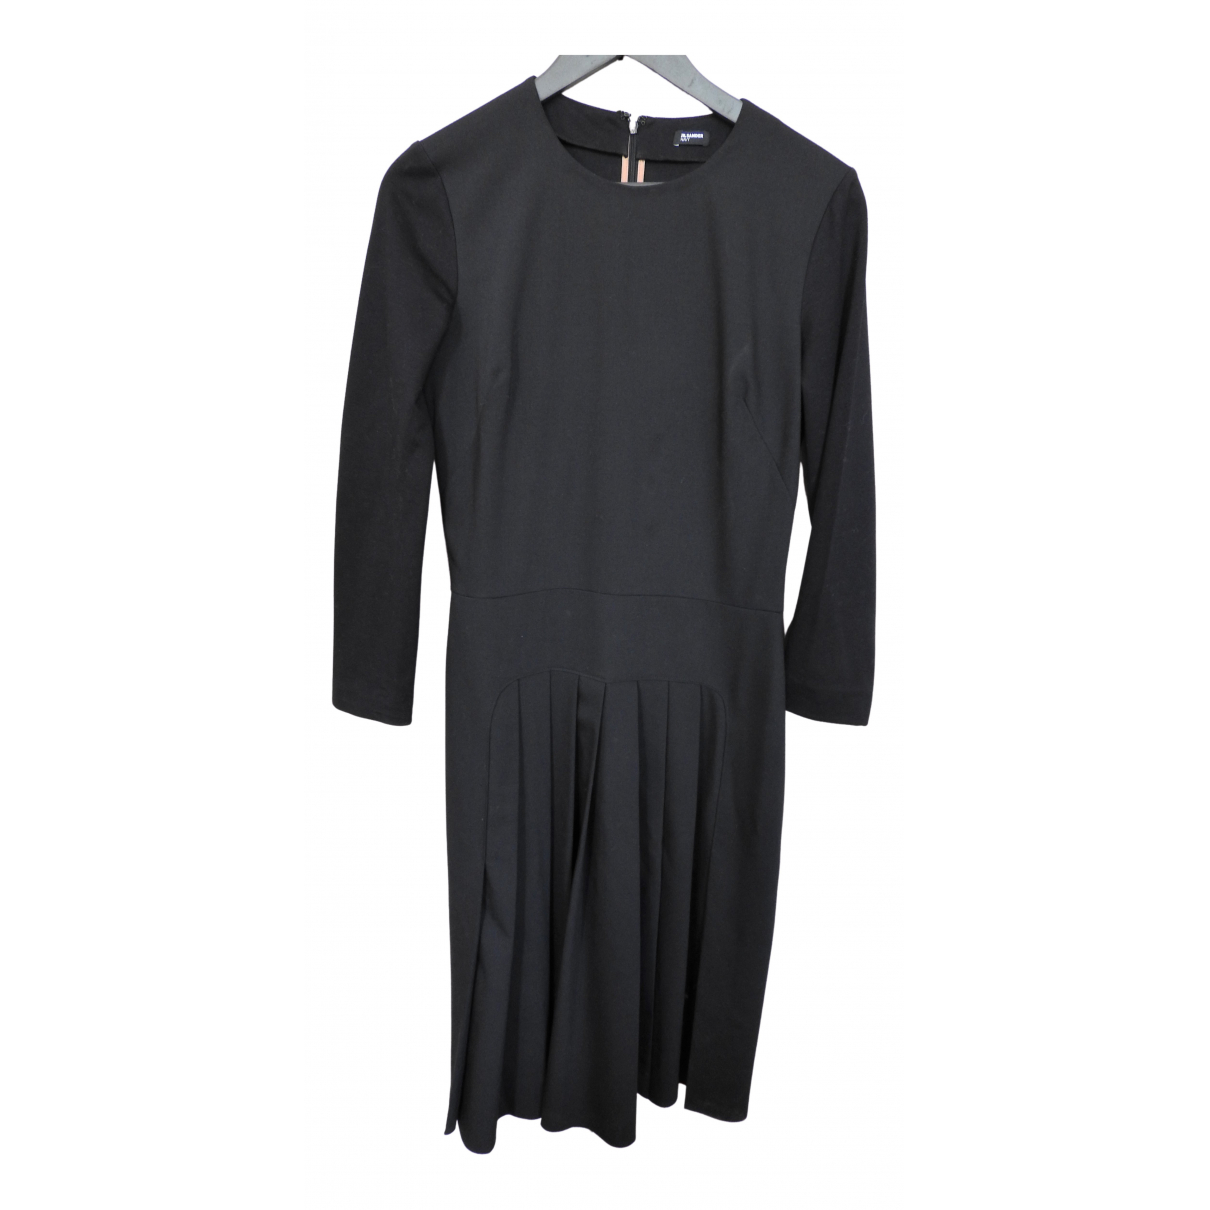 Jil Sander N Navy Wool dress for Women 40 FR